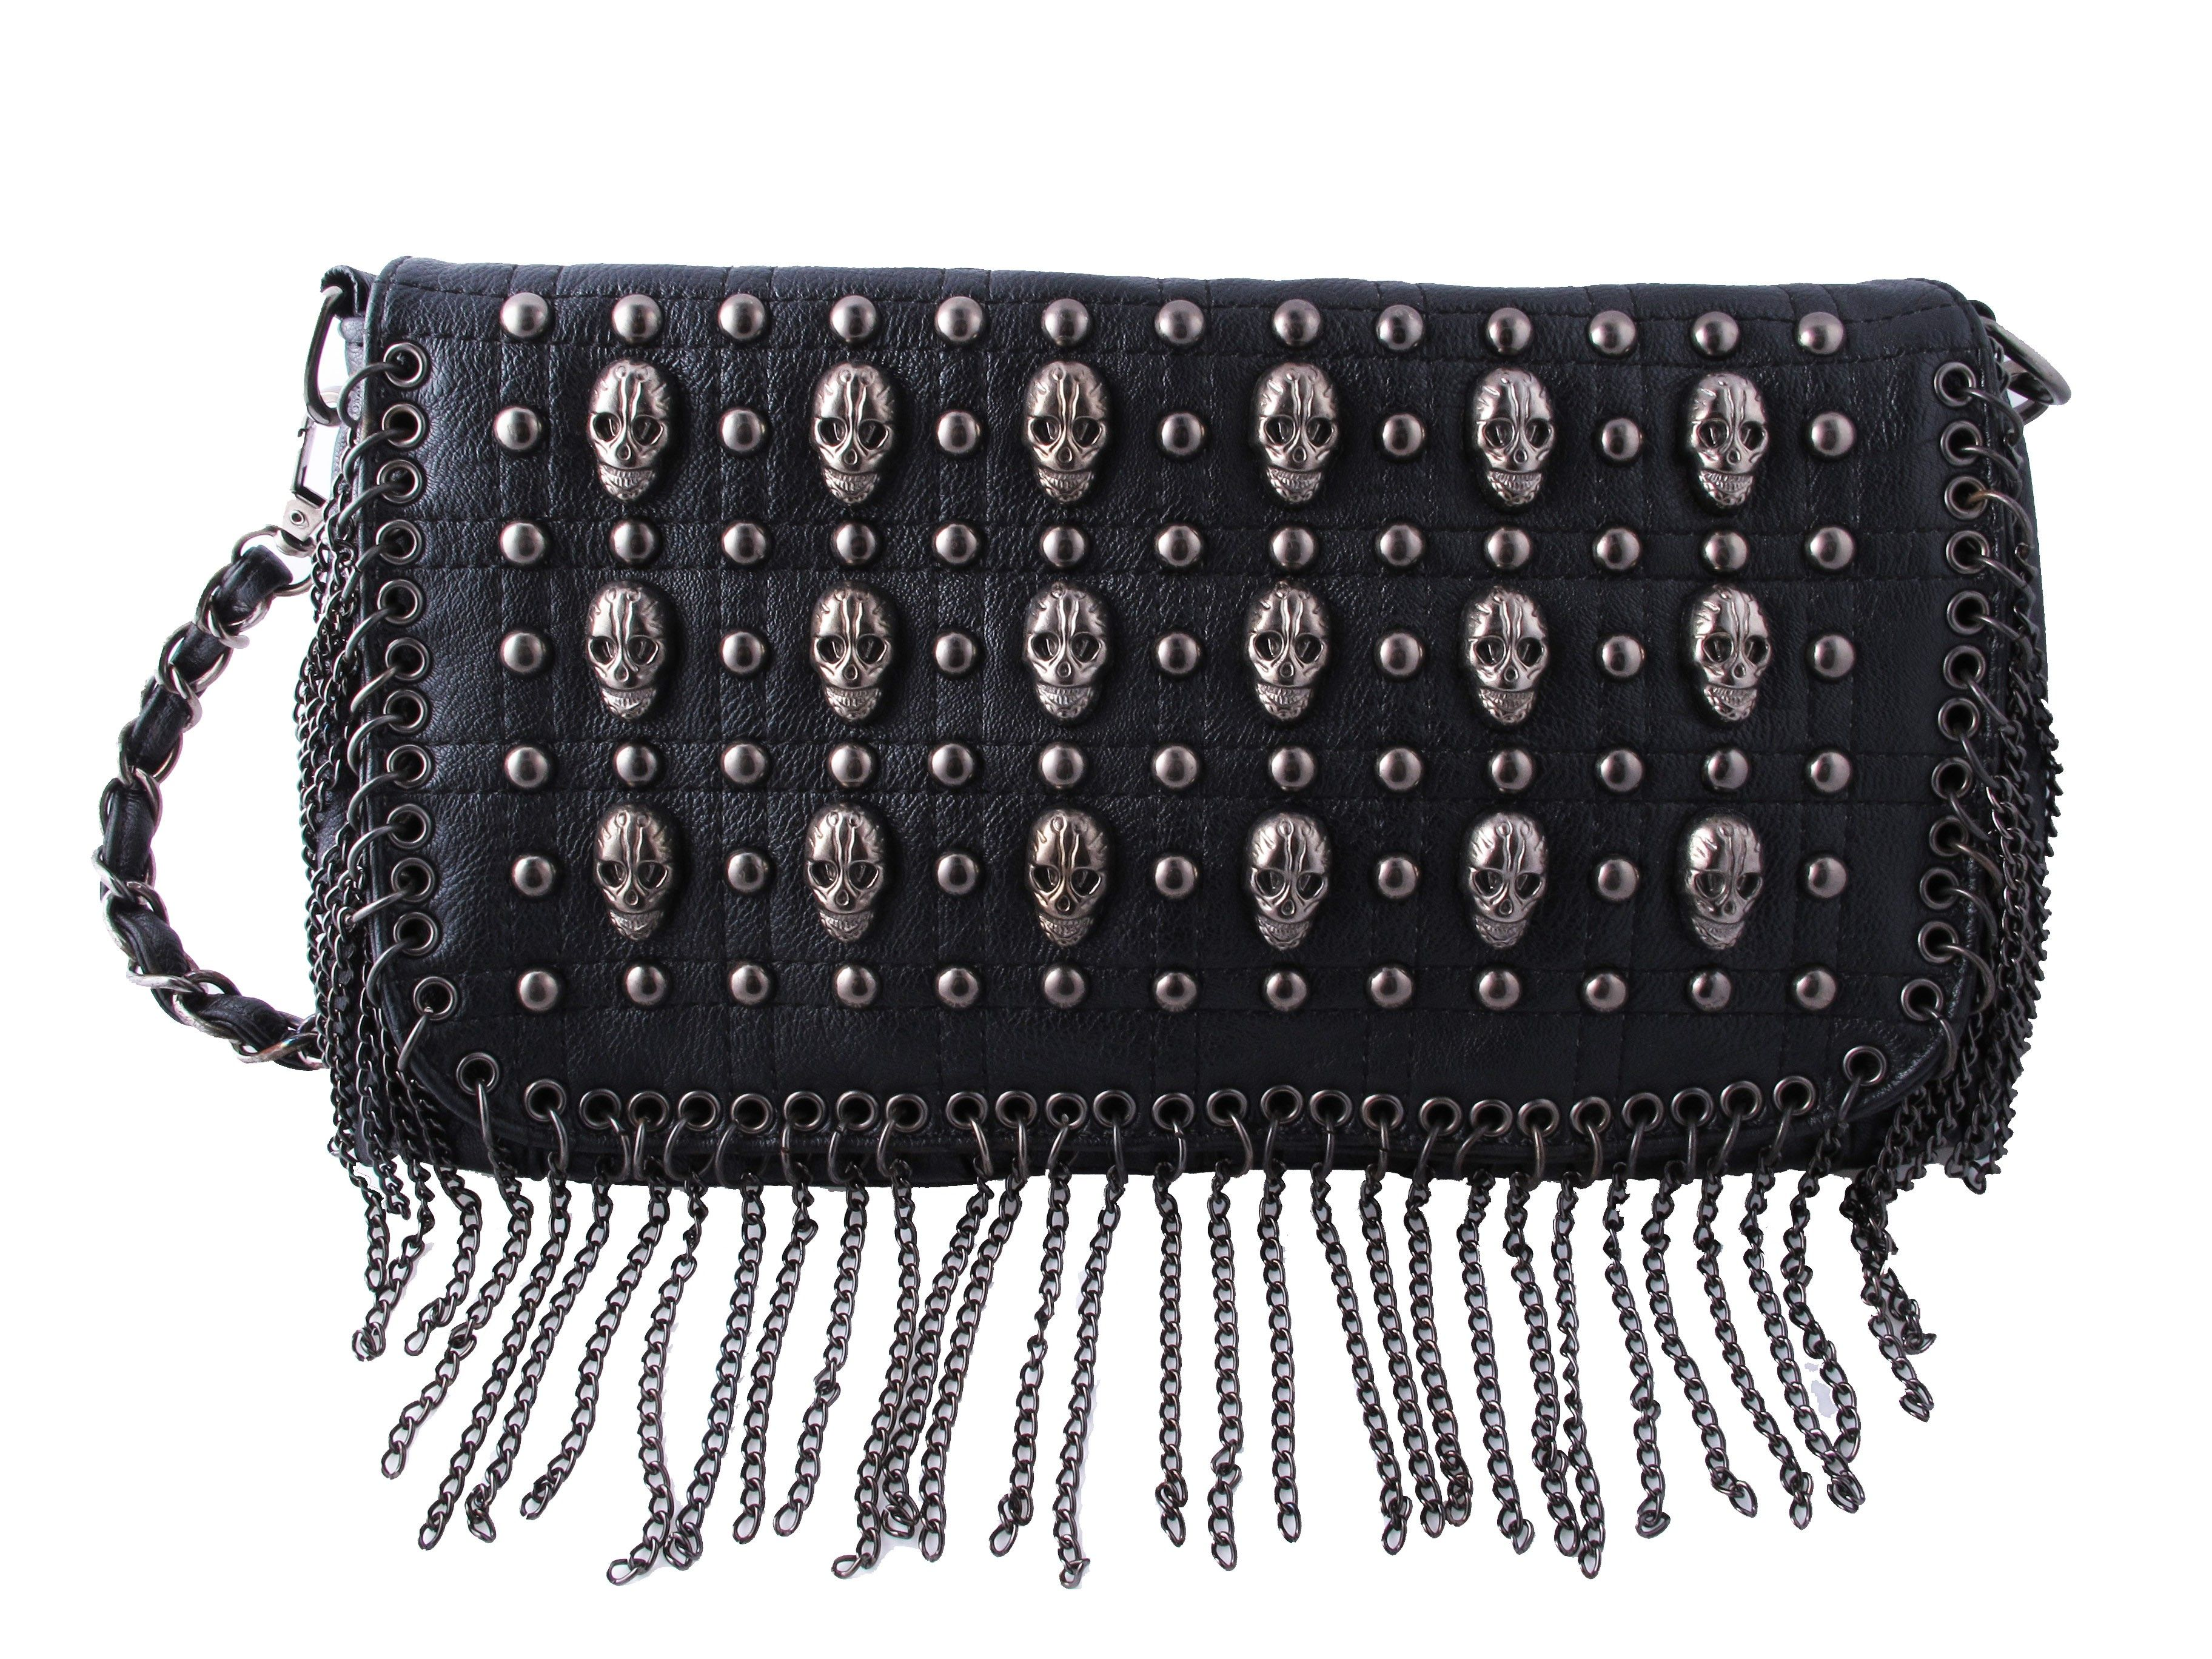 SAC - Multi Skull Chain Purse available in the #inkedshop visit us online at www.inkedshop.com/accessories/women/handbags/multi-skull-chain-purse.html